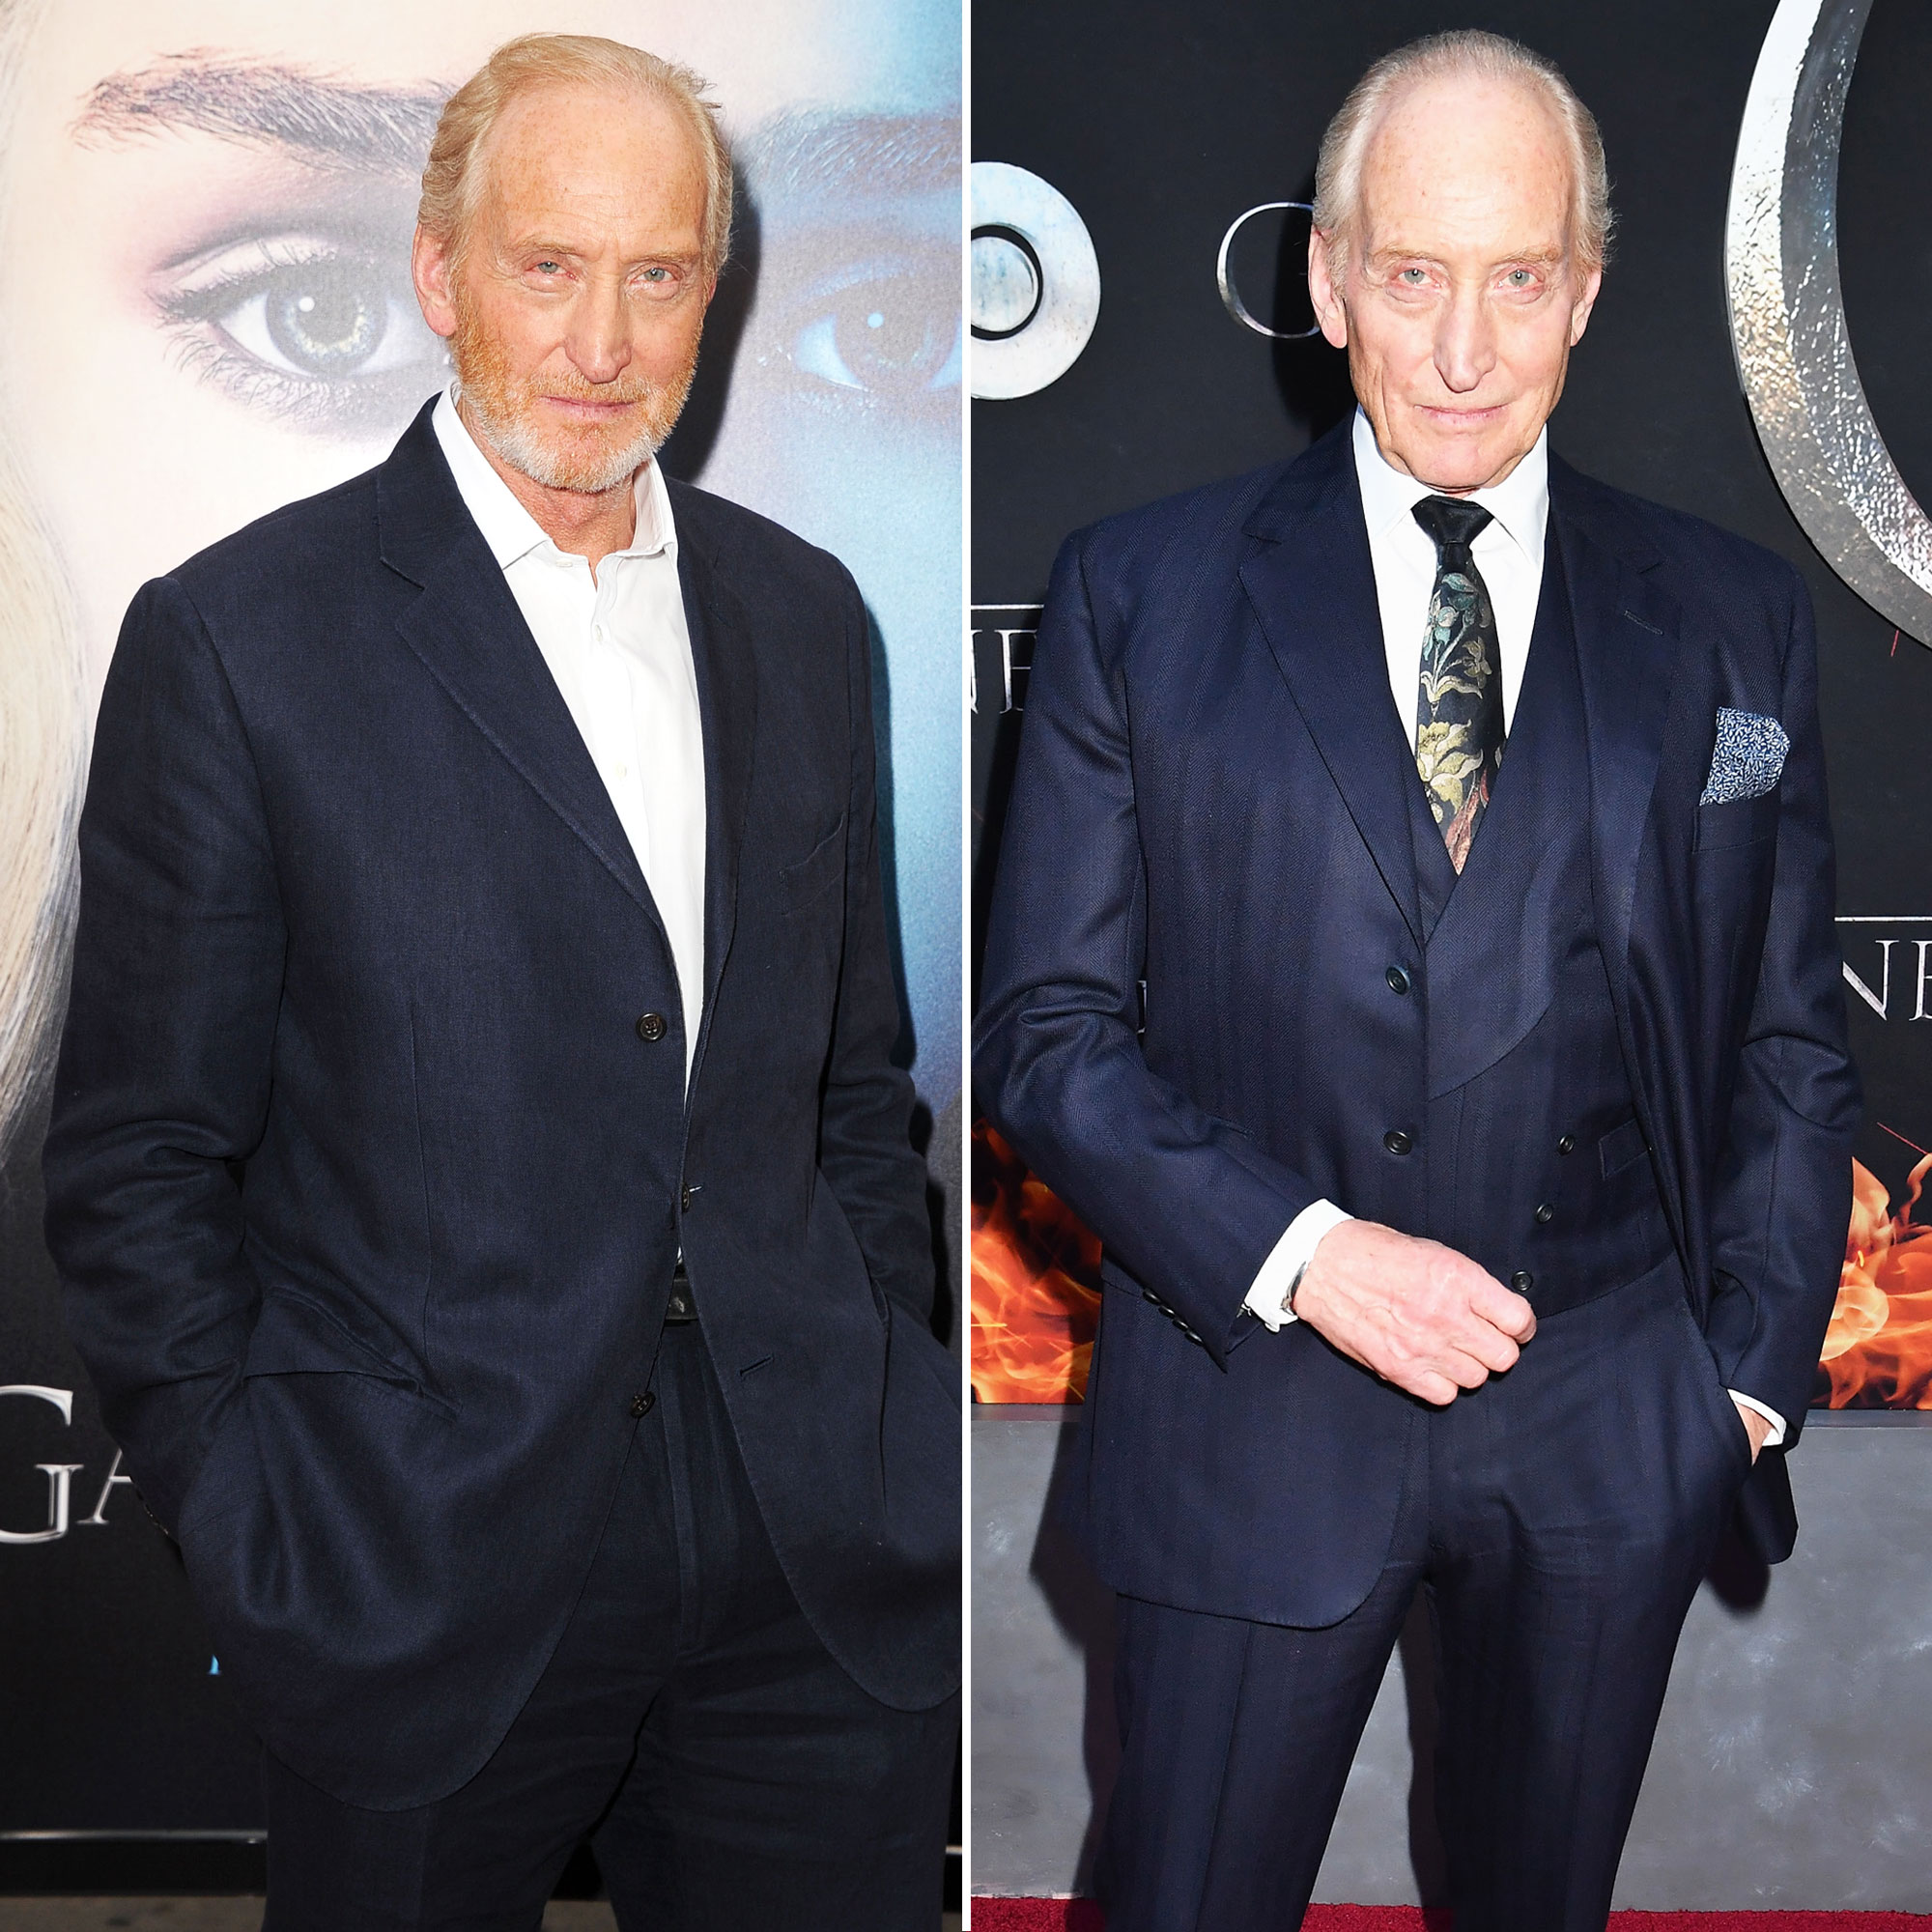 Charles Dance 'Game of Thrones' Stars: From the First 'GoT' Red Carpet Premiere to the Last - Dance has been keeping busy, adding over 20 acting credits to his name since his character's death at the hands of his onscreen son Tyrion in 2015. One of those projects included Me Before You , opposite Emilia Clarke!